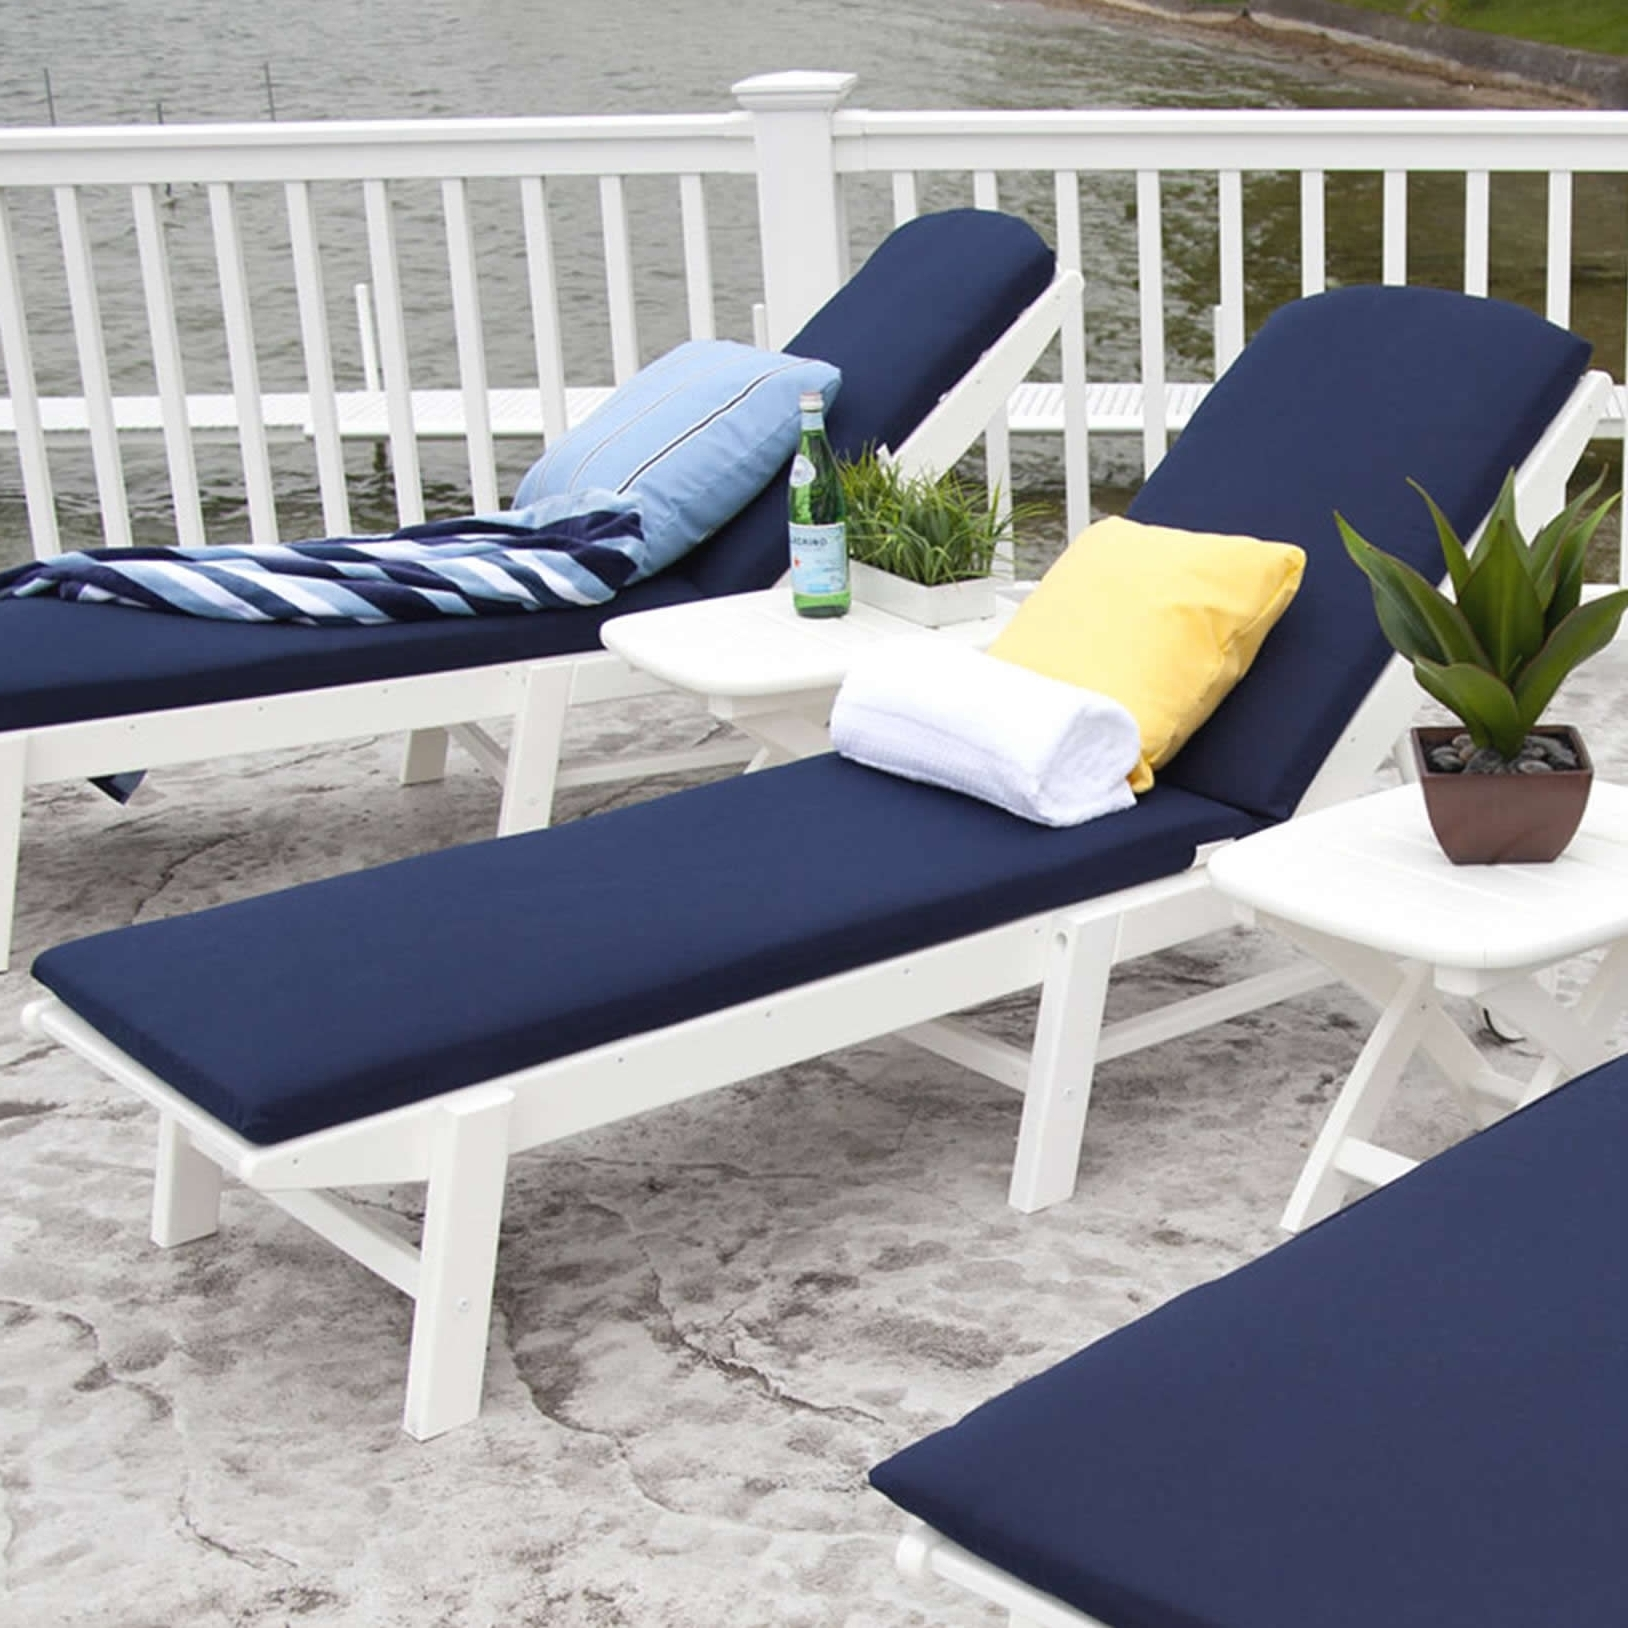 Well Known Inexpensive Outdoor Chaise Lounge Chairs Throughout Lounge Chairs : 24X24O~1 Outdoor Lounge Chair Cushions (View 15 of 15)